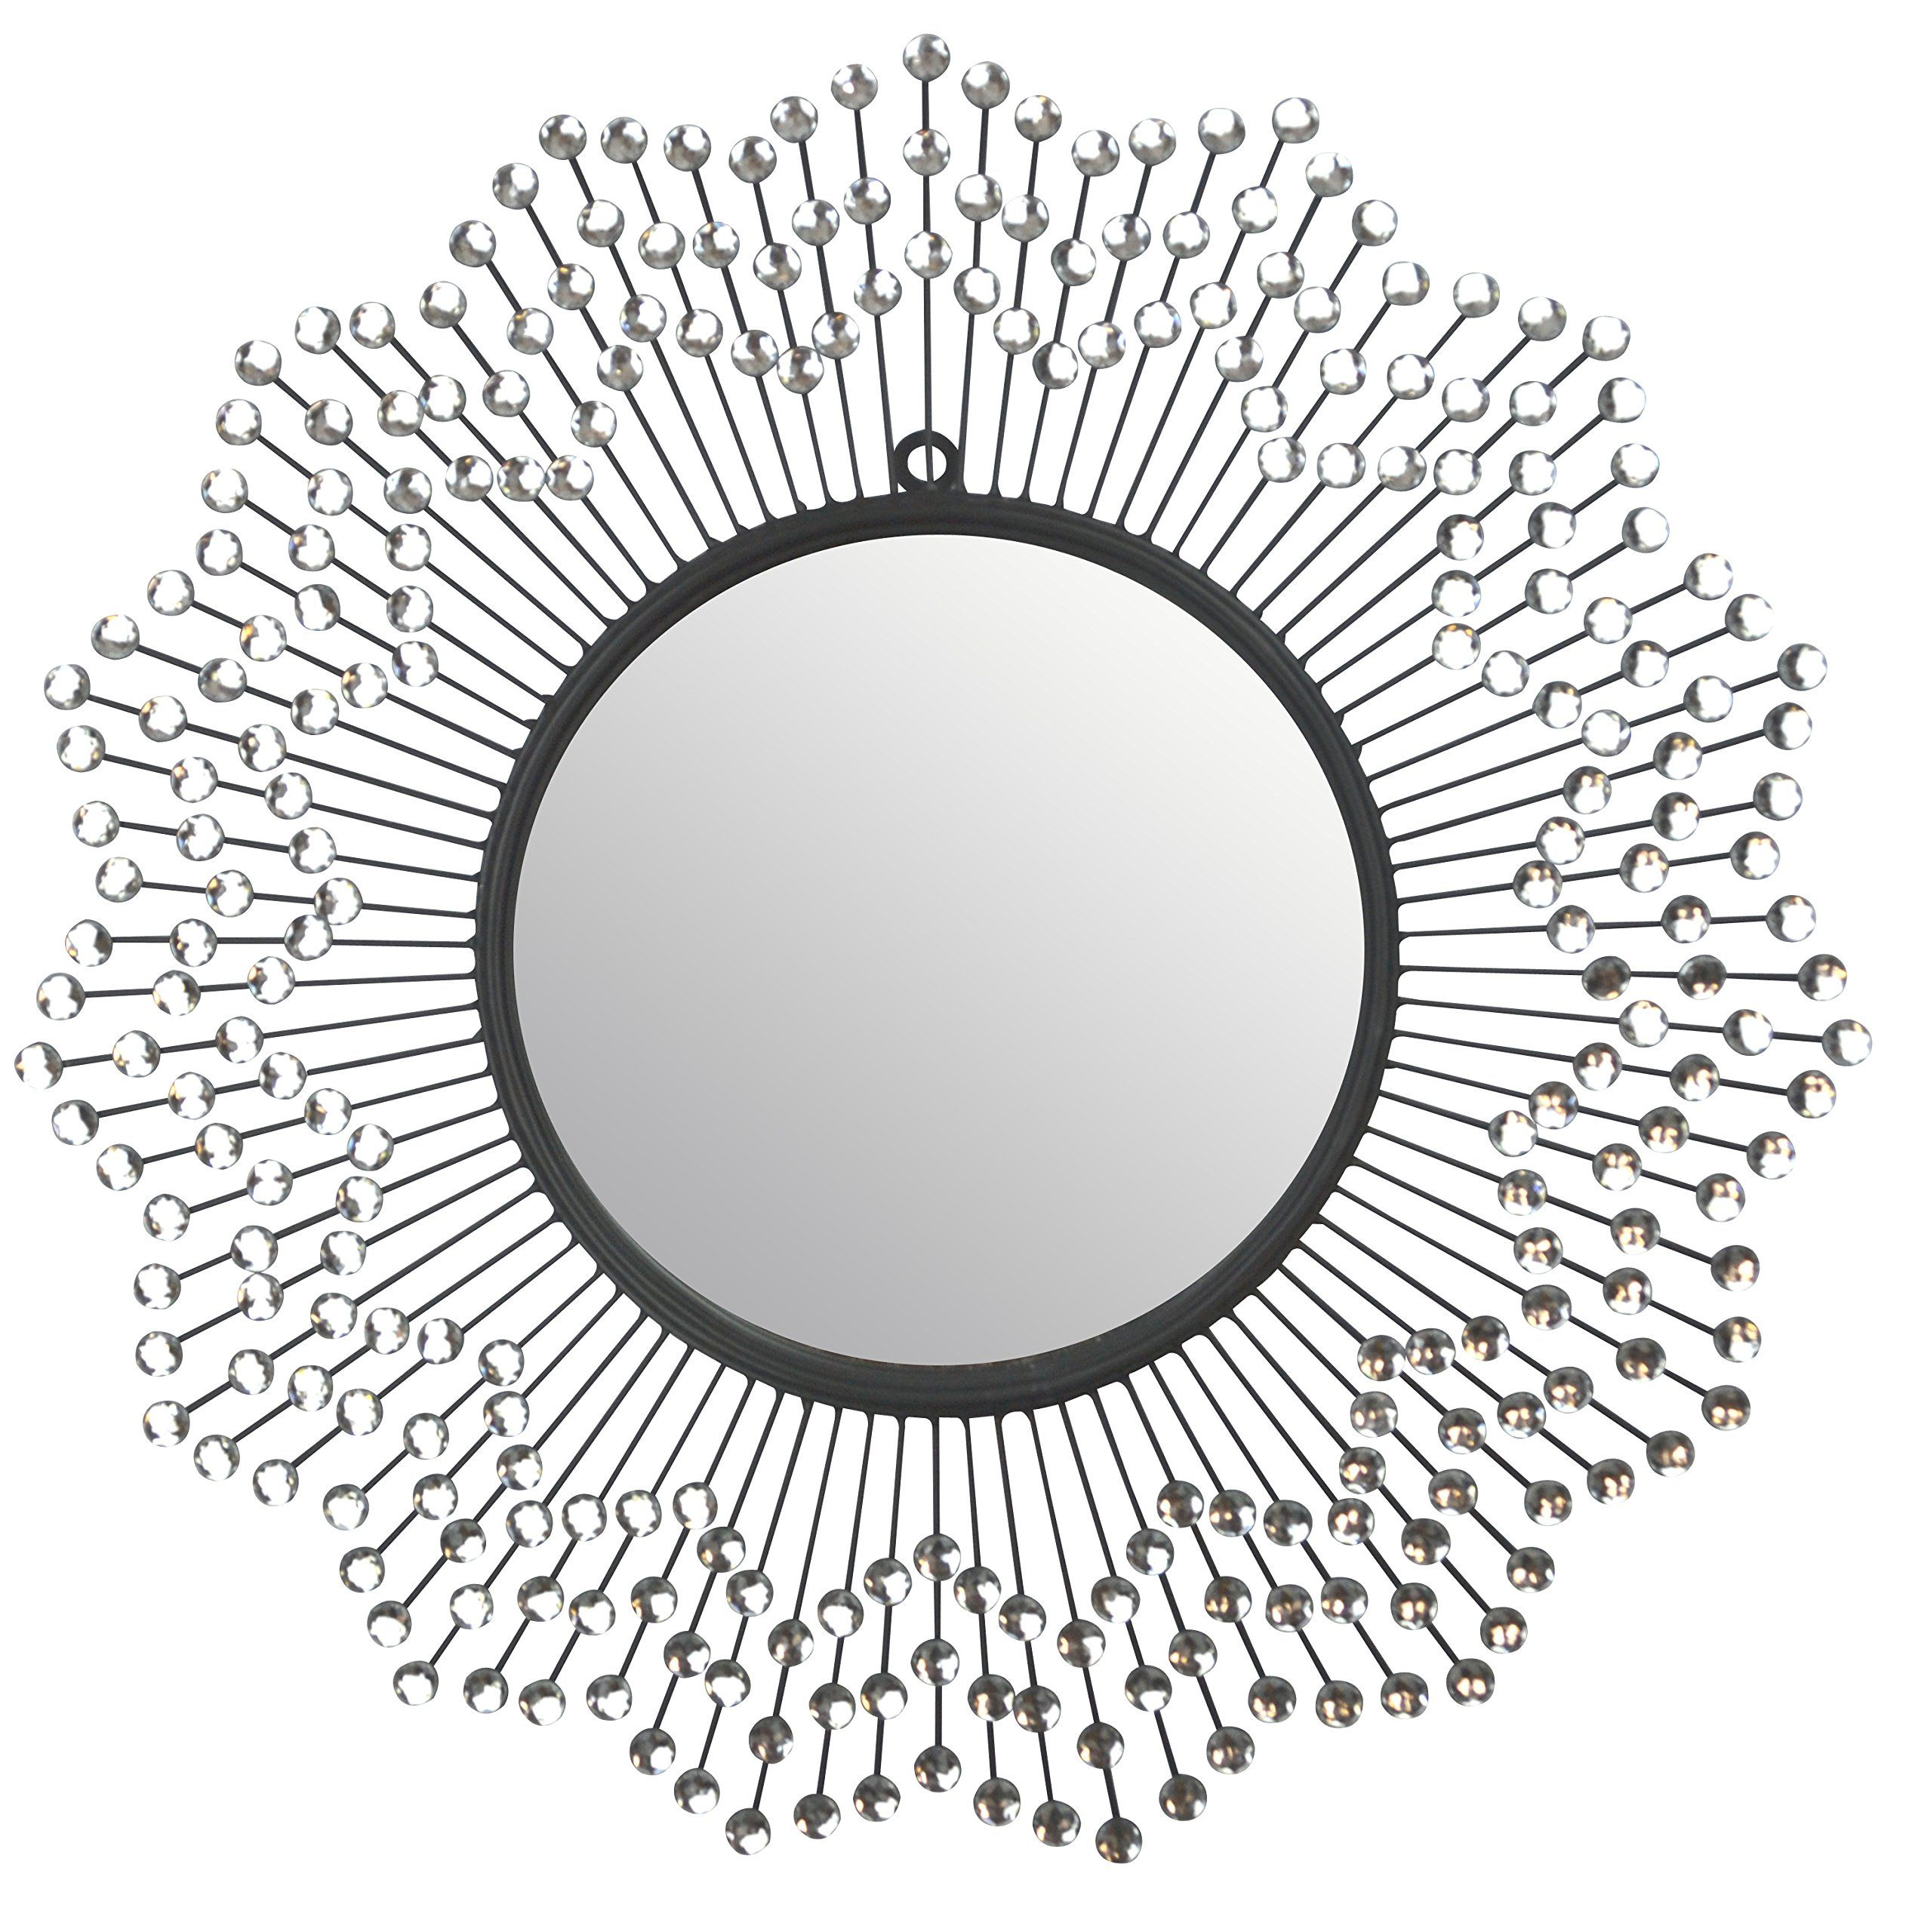 decorative en lively make interiors points is a like us cm for more decor and mirror it acrylic mirrors p consist save jewelry elements modern of exclusive